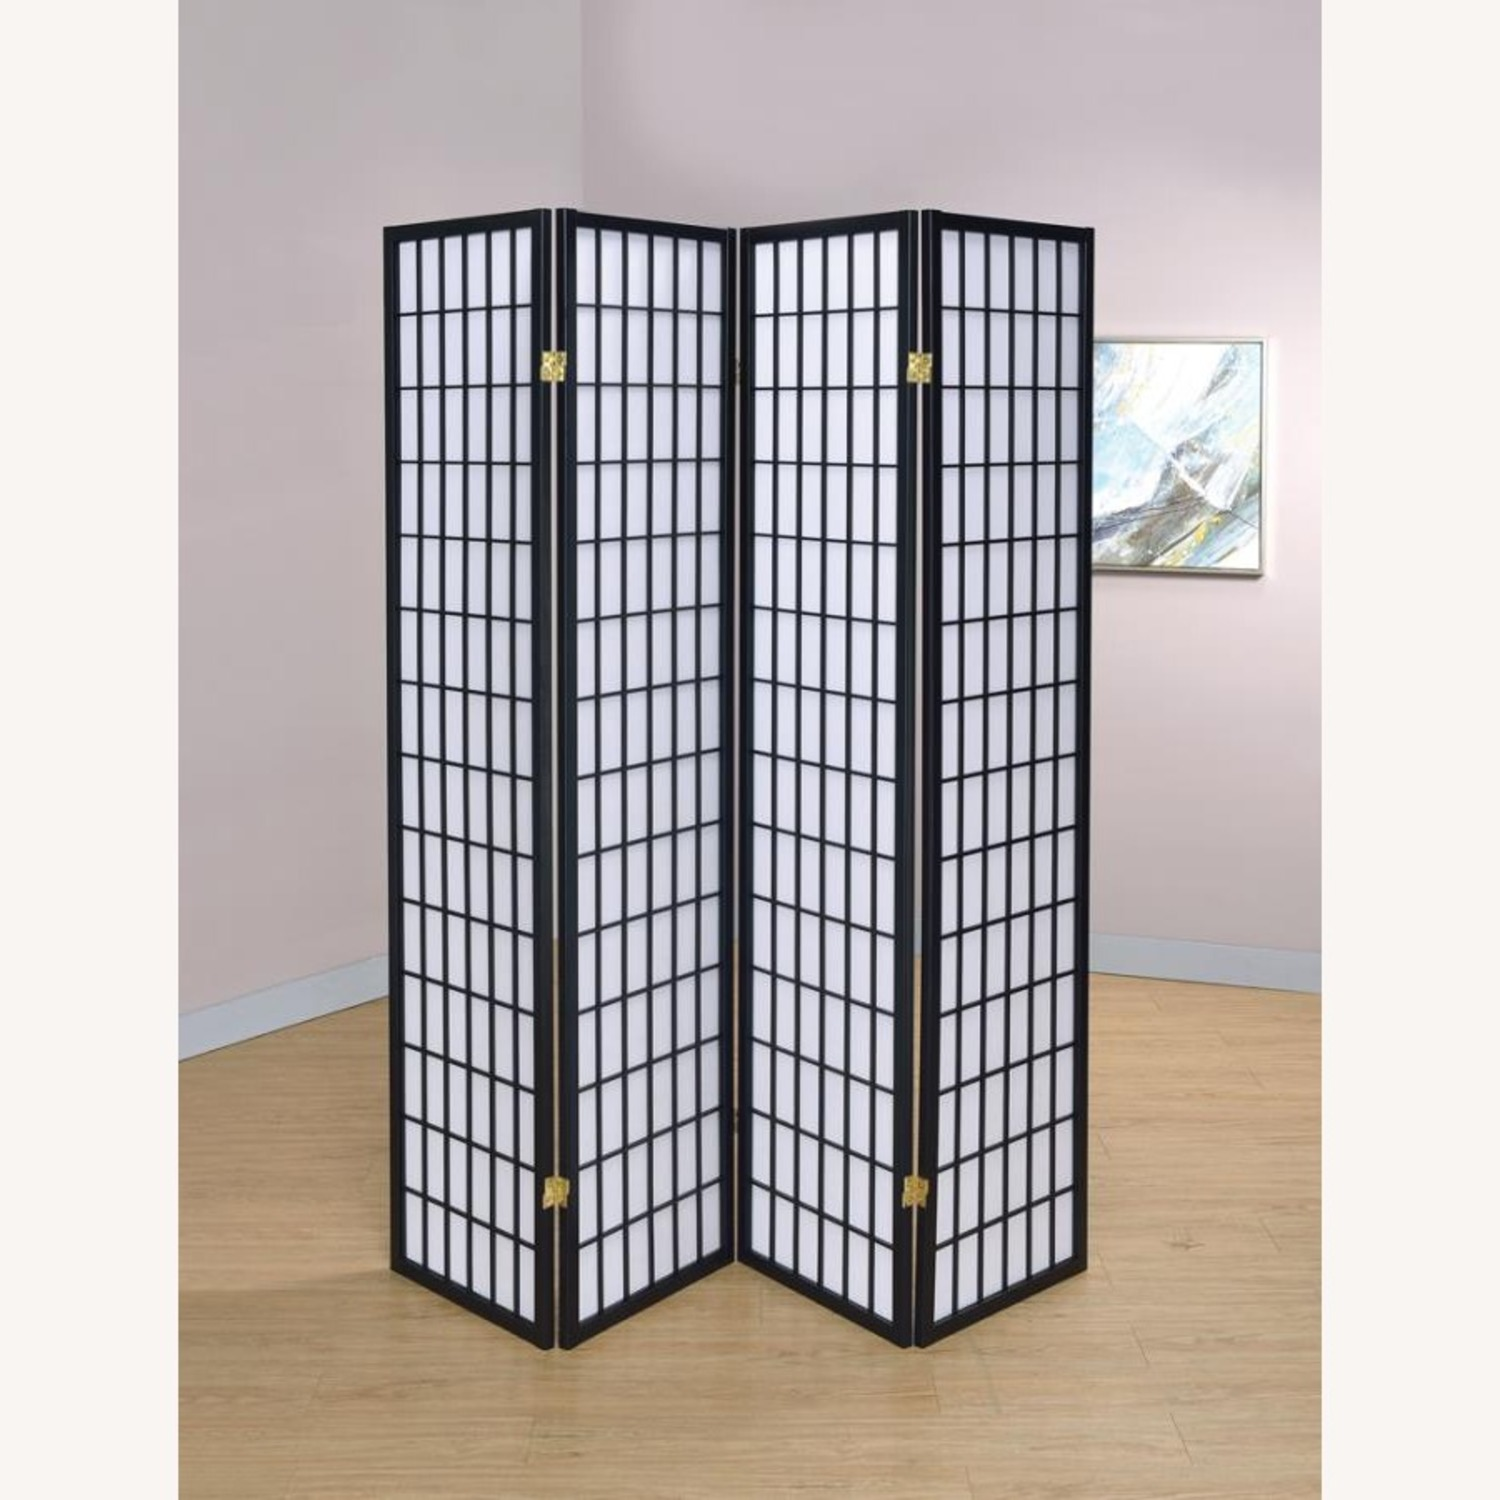 4-Panel Screen In White W/ Linear Grid Design - image-3